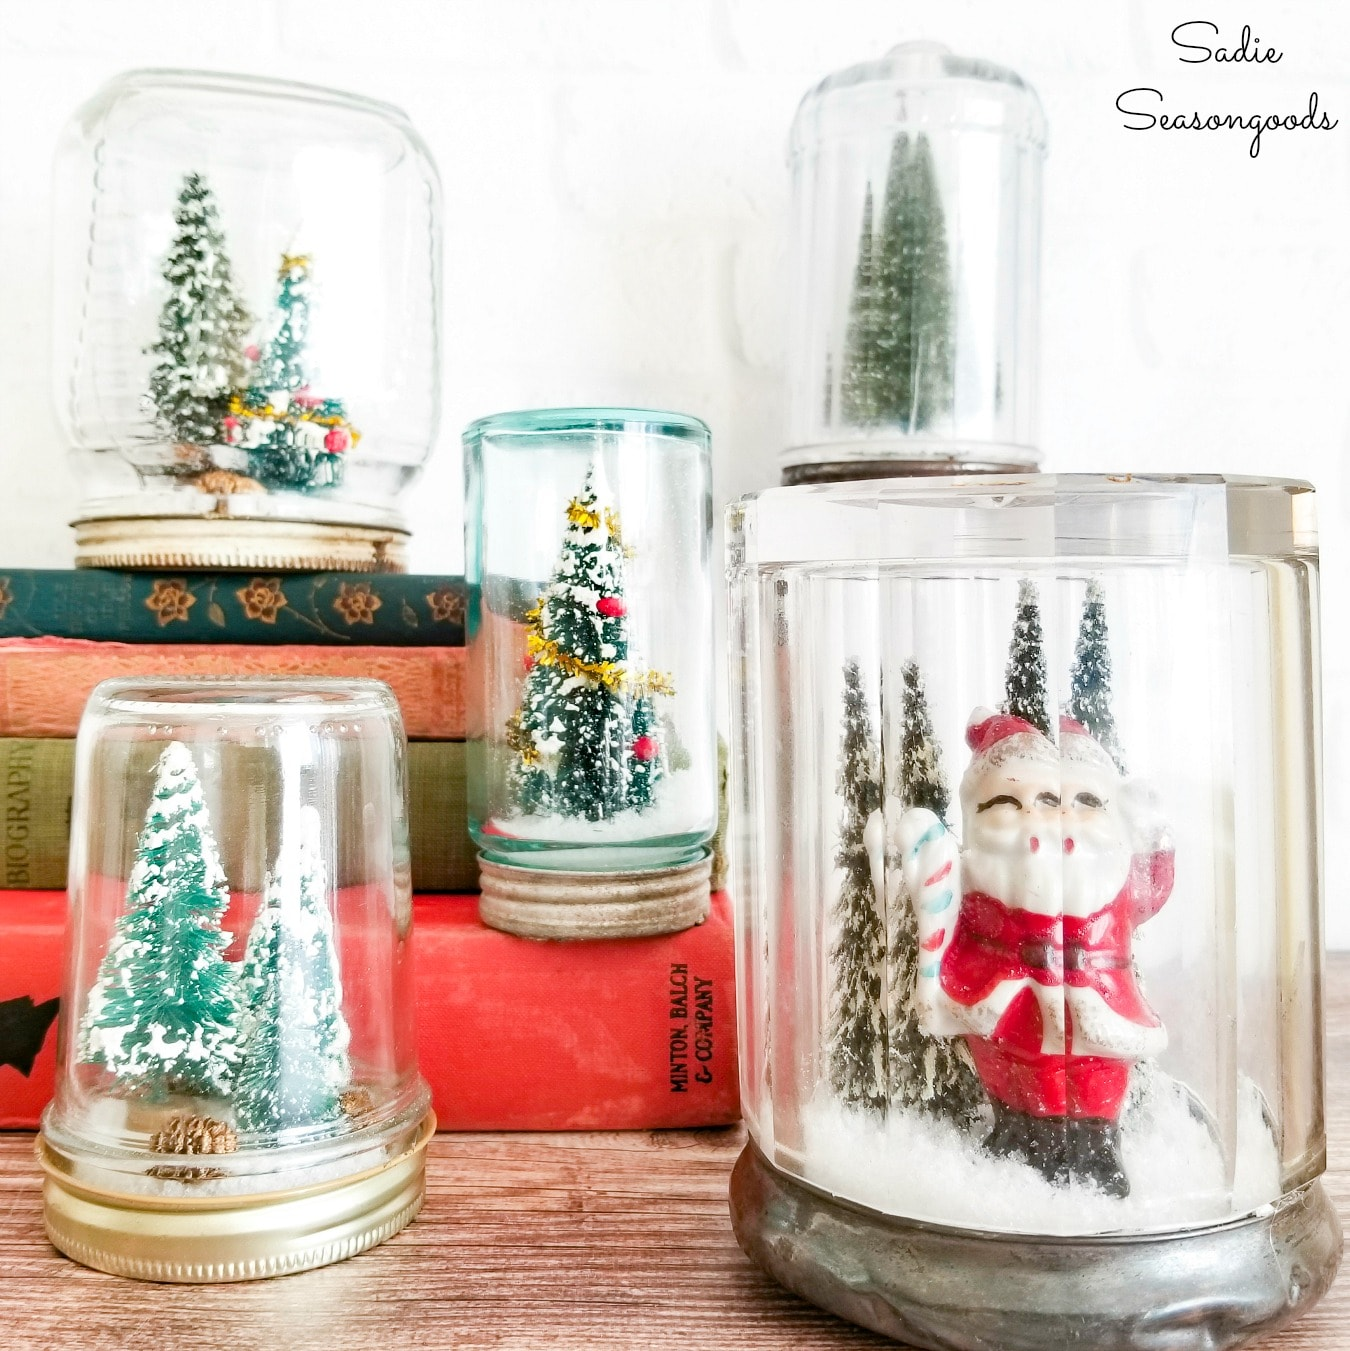 DIY Waterless Snow Globe in a Vintage Glass Jar